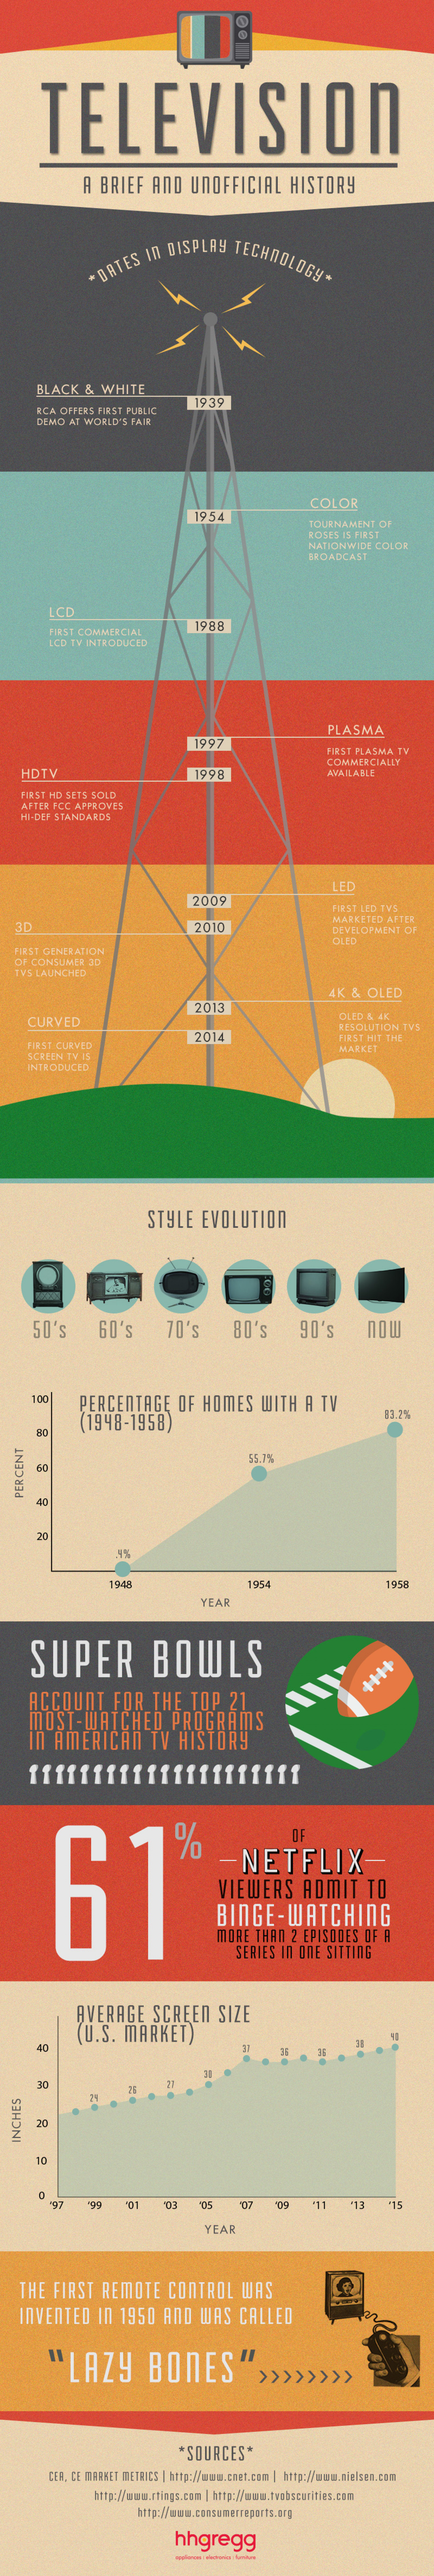 A Brief and Unofficial History of TV Technology Infographic